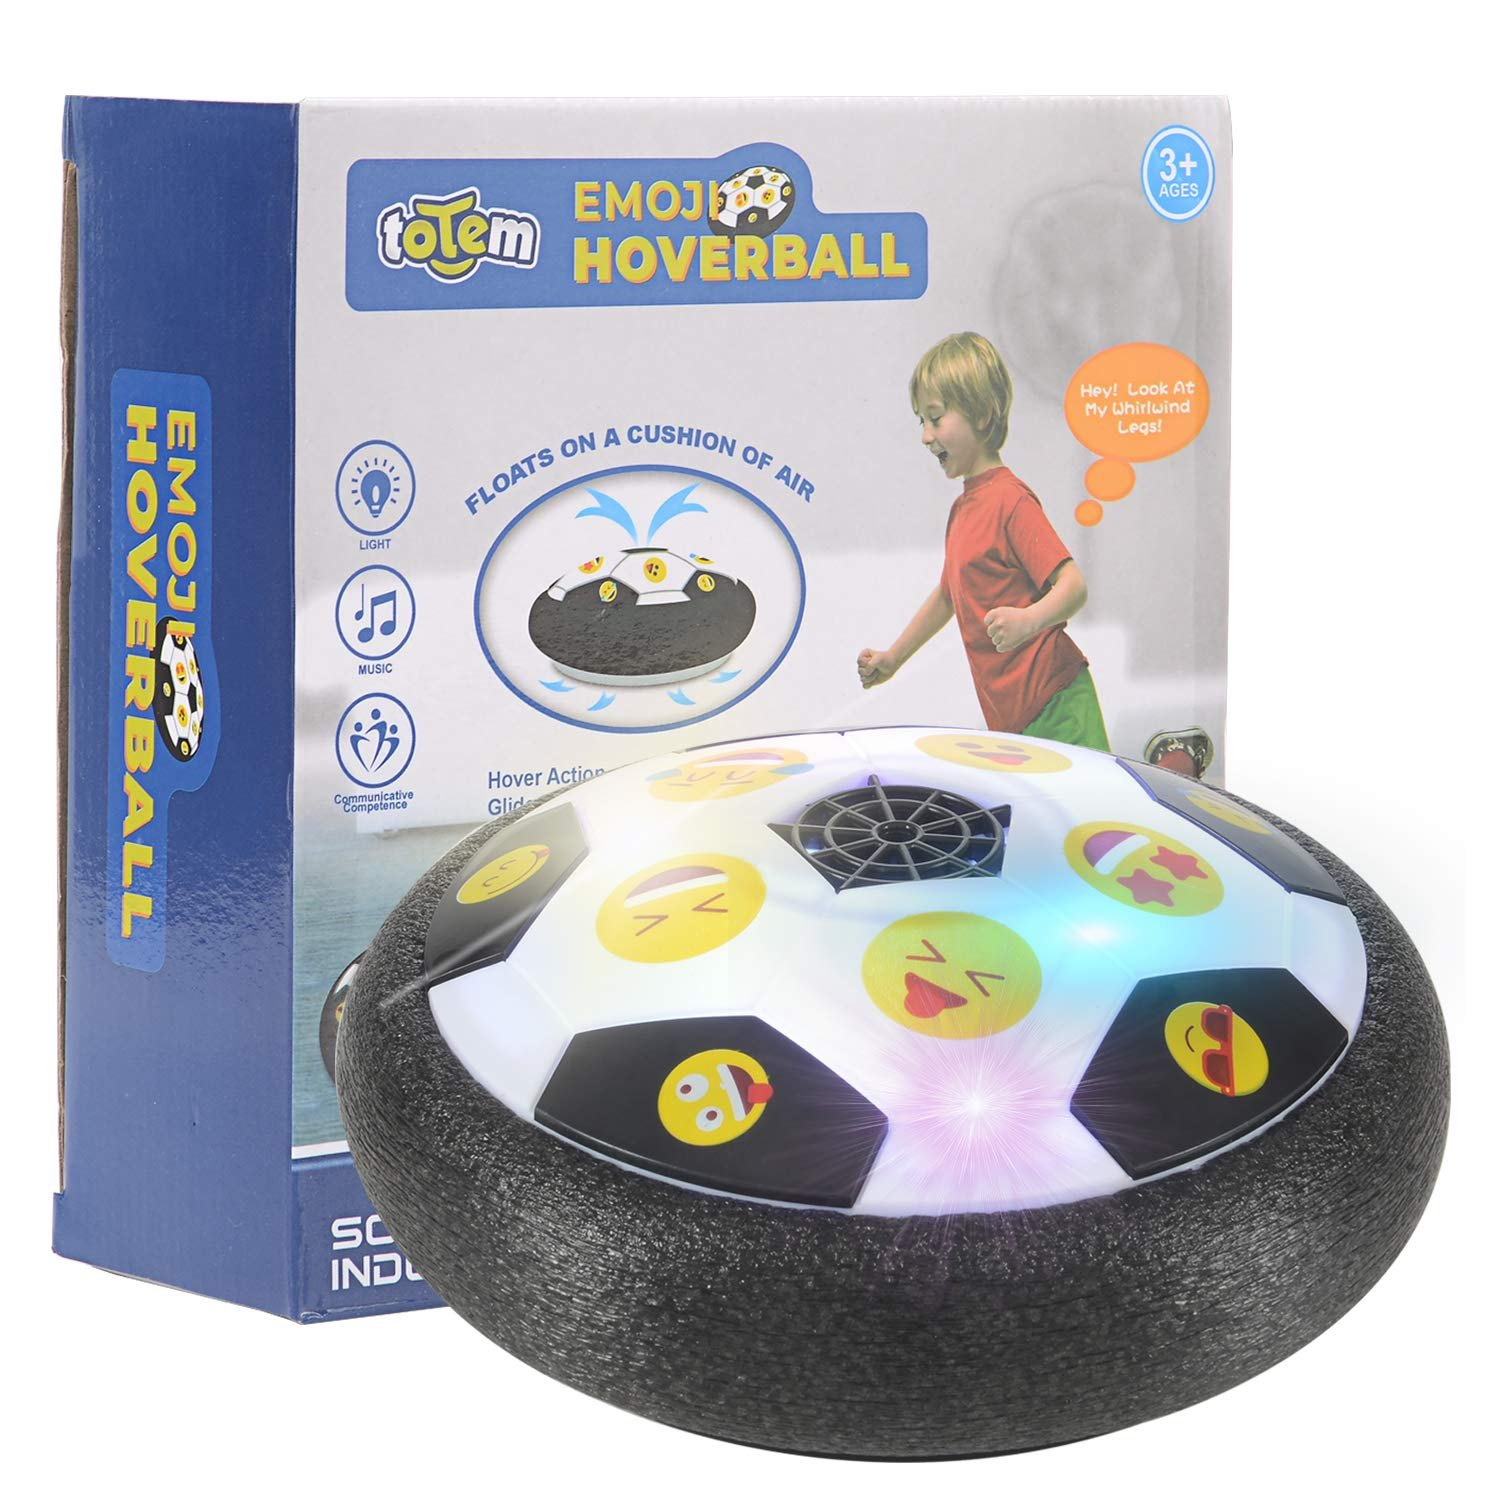 Emoji Hover Ball Toys For Boys Gifts Hover Soccer Ball